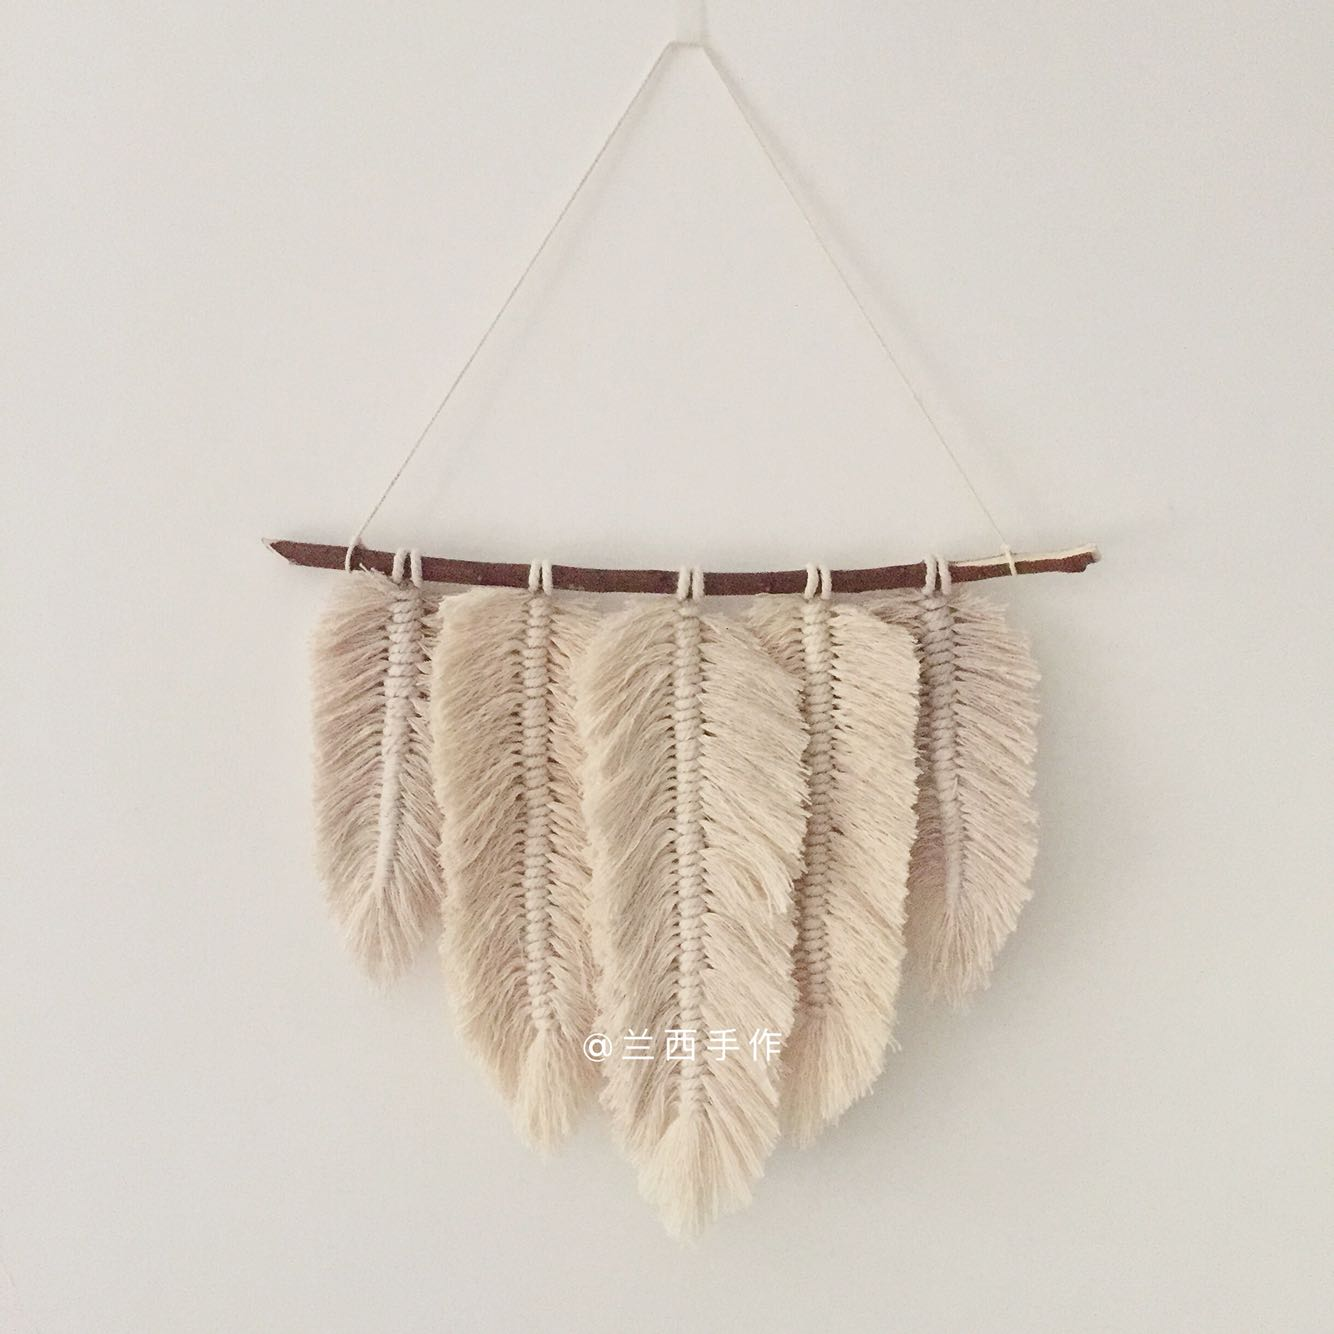 Ins Macrame Hand made Cotton Woven Tapestry Wall Hanging Feather Bohemia Nordic Wall Decoration Pendant Boho Decor|Tapestry|Home & Garden - title=